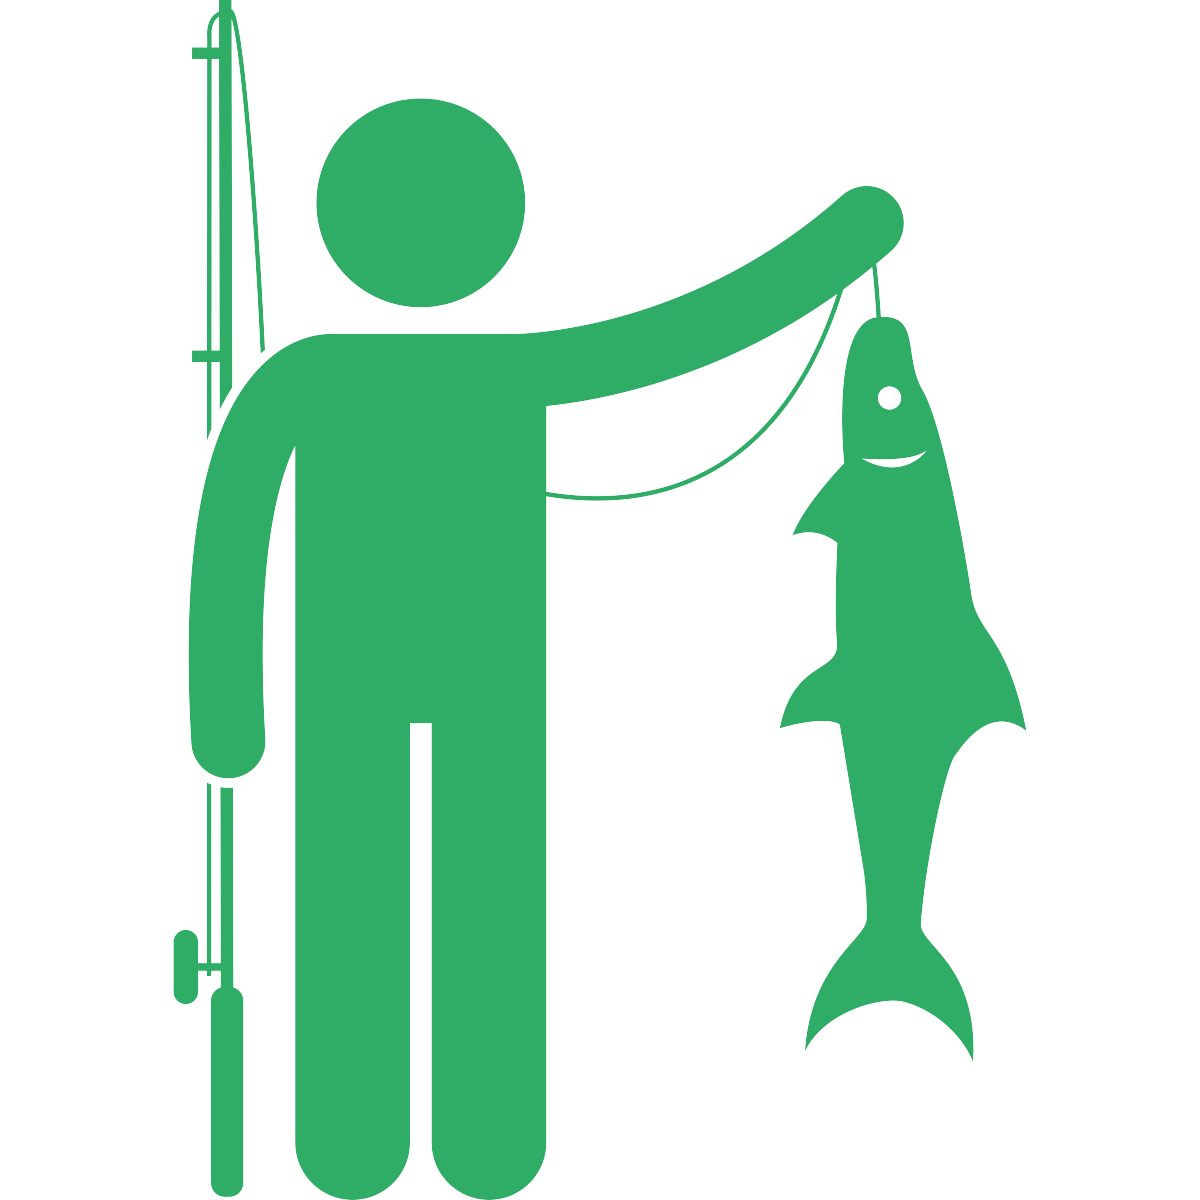 noun_Fishing_1245033_2fac66